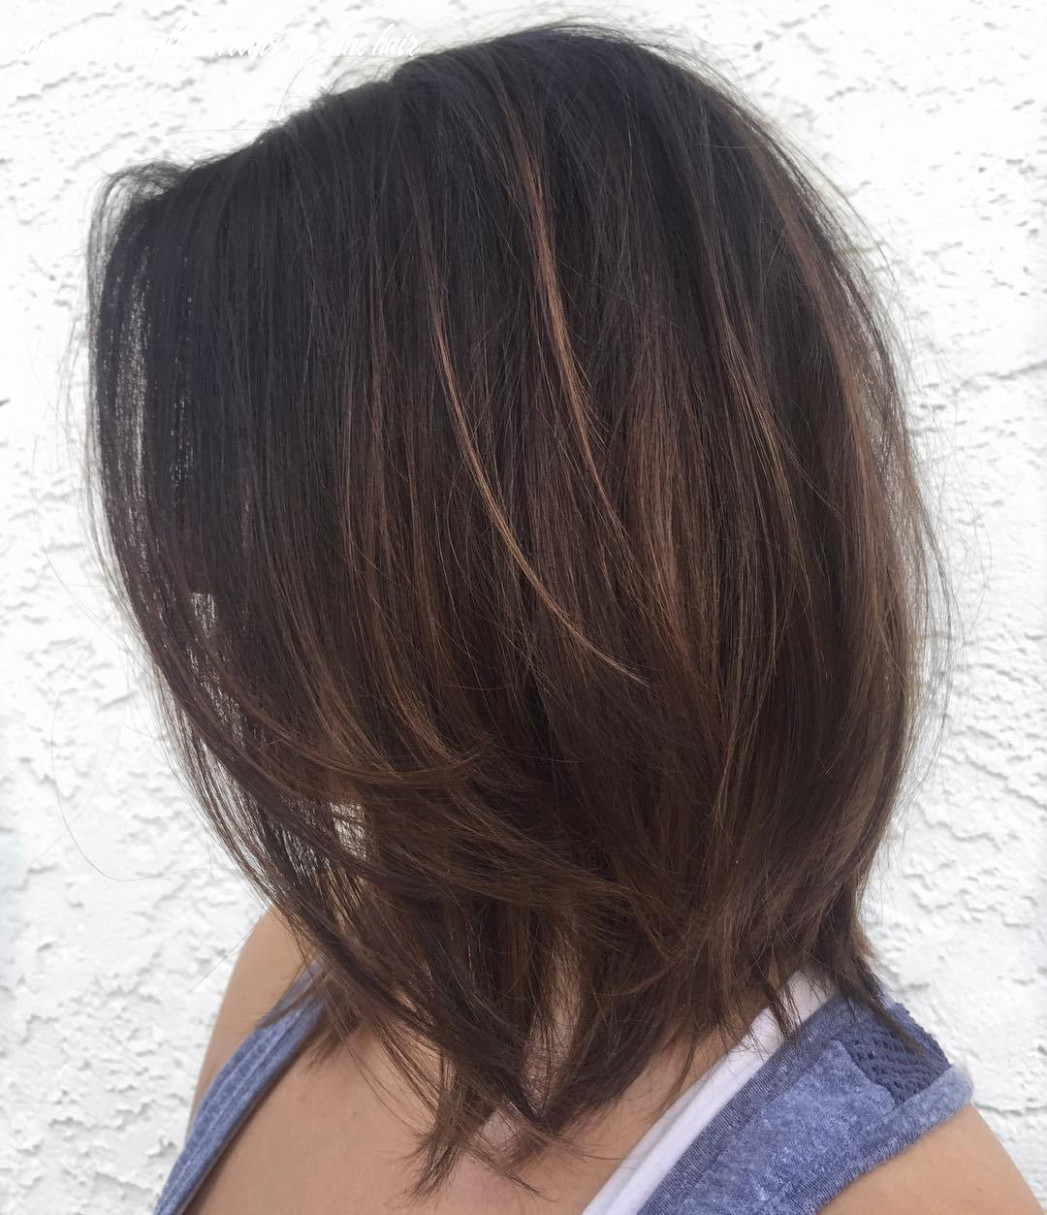 9 perfect medium length hairstyles for thin hair in 9 shoulder length haircuts for fine hair